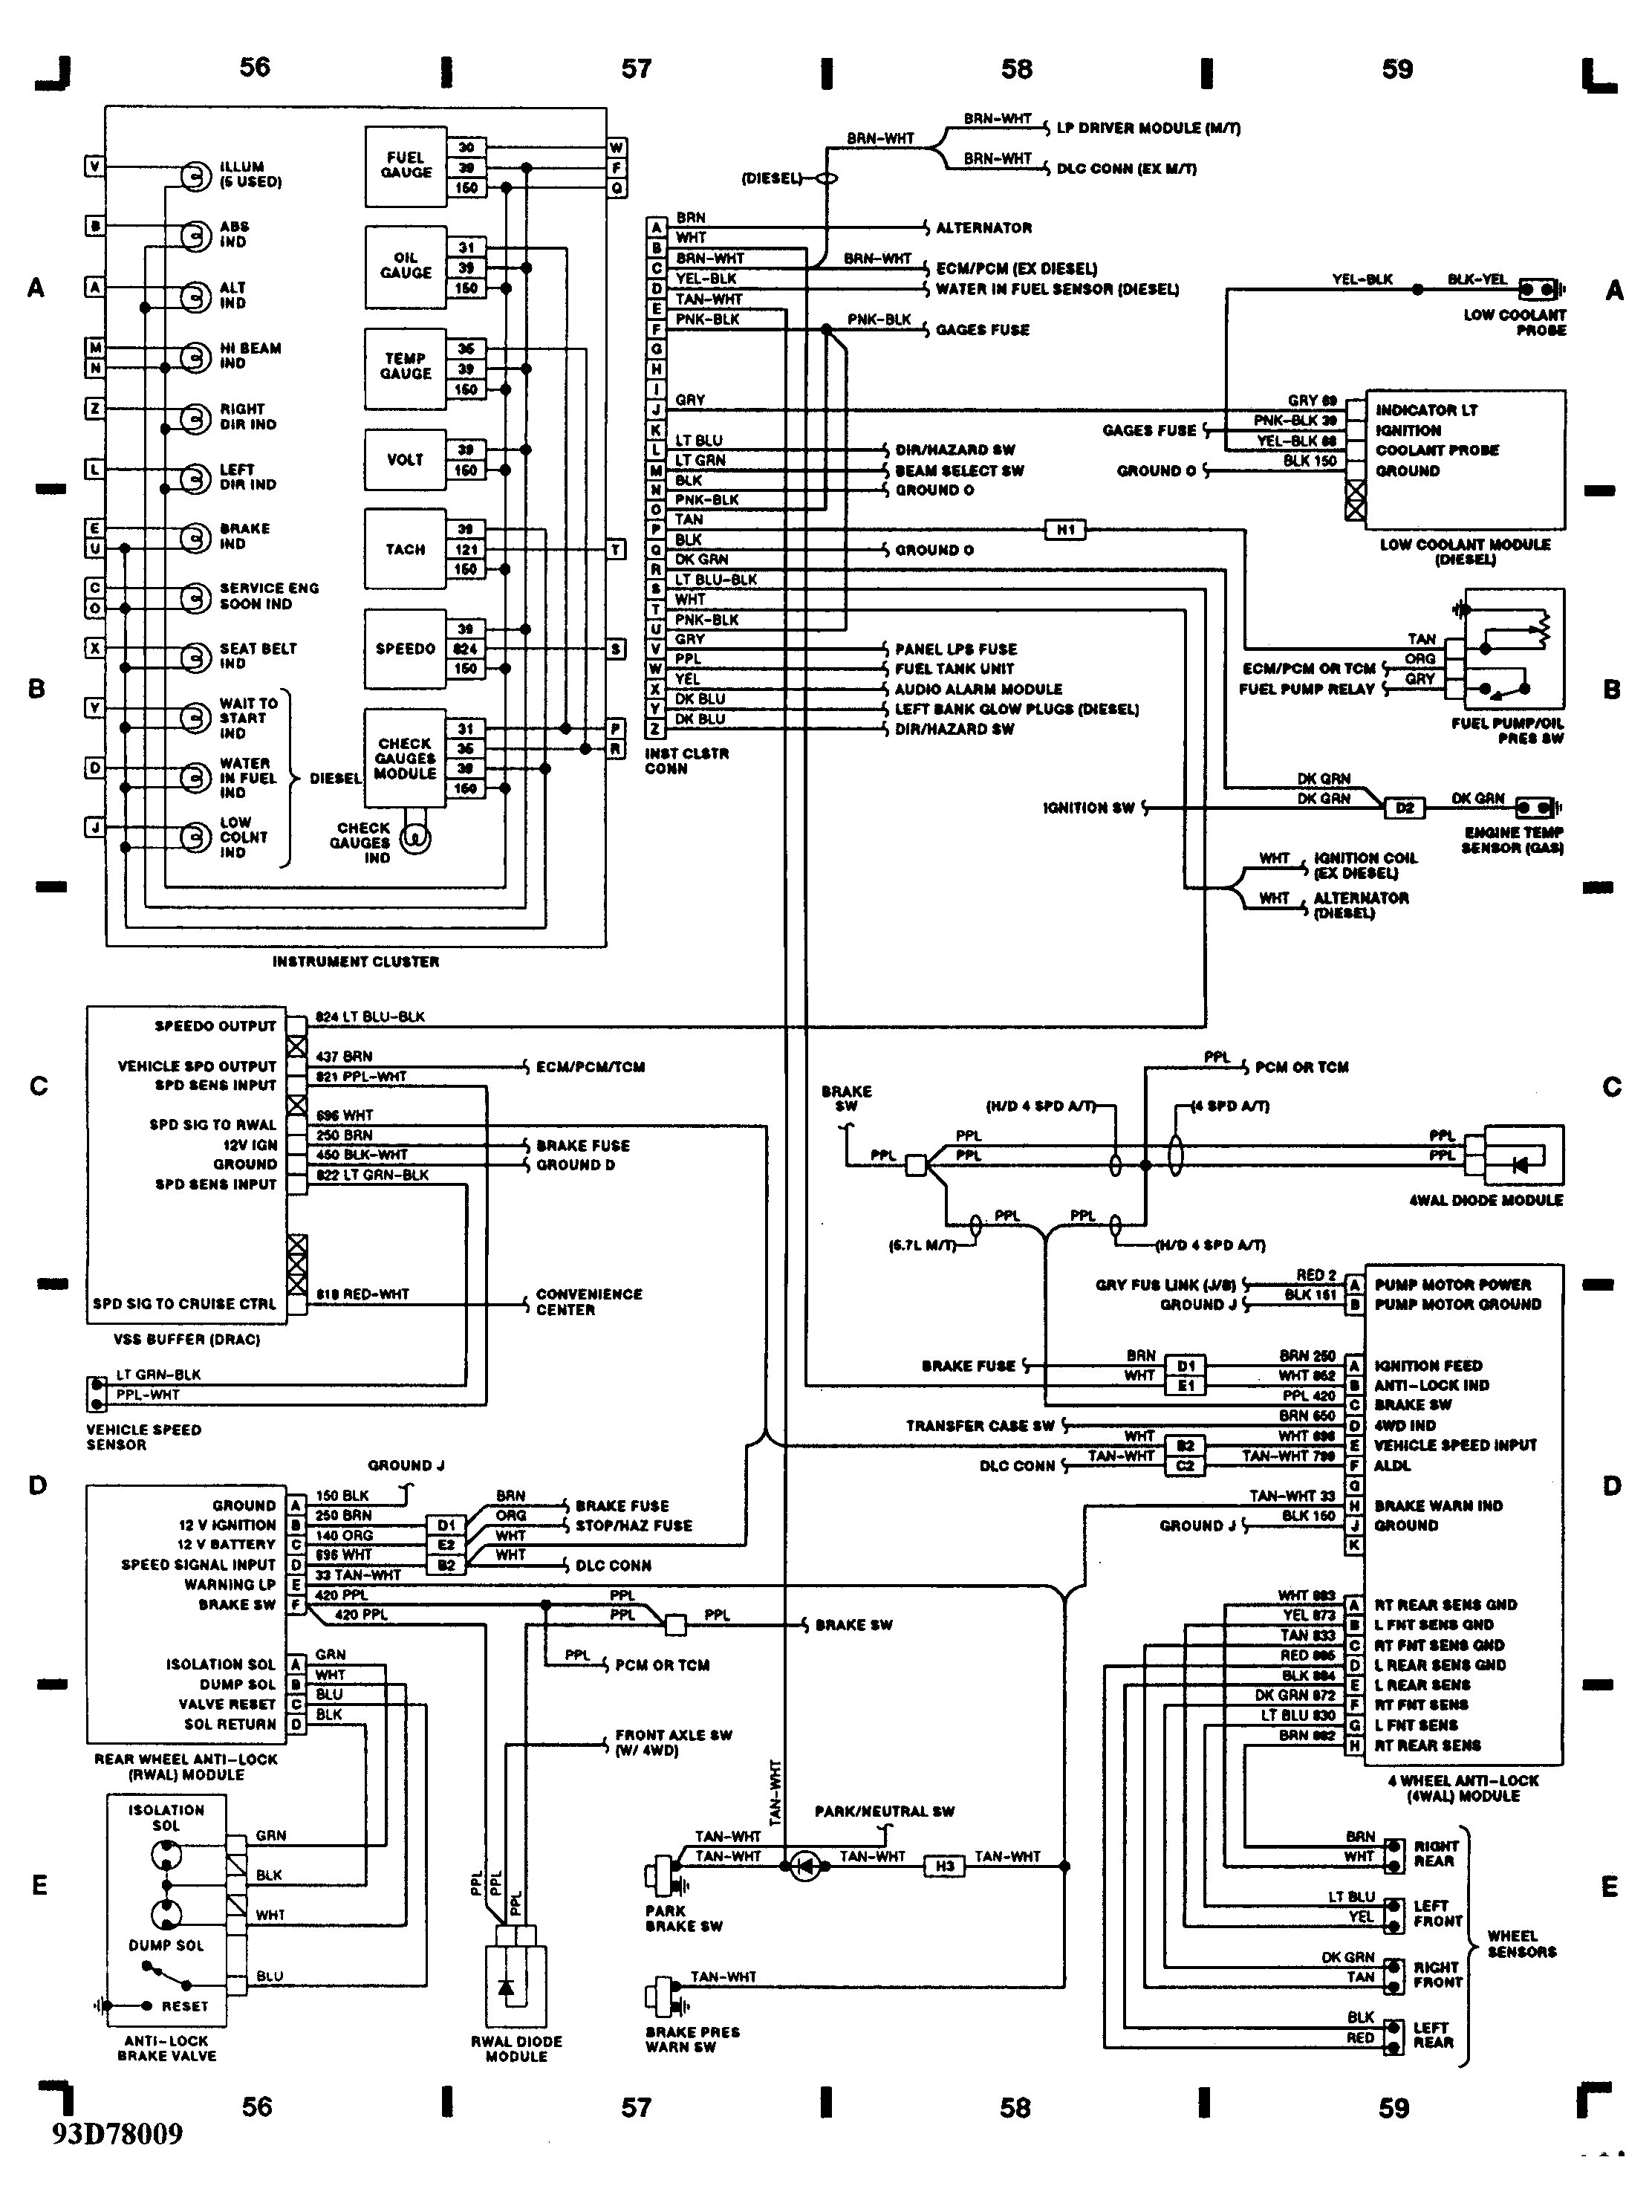 1976 chevelle wiring diagram application wiring diagram u2022 rh diagramnet today 1967 chevelle wiring diagrams online 1970 chevelle wiring diagram download